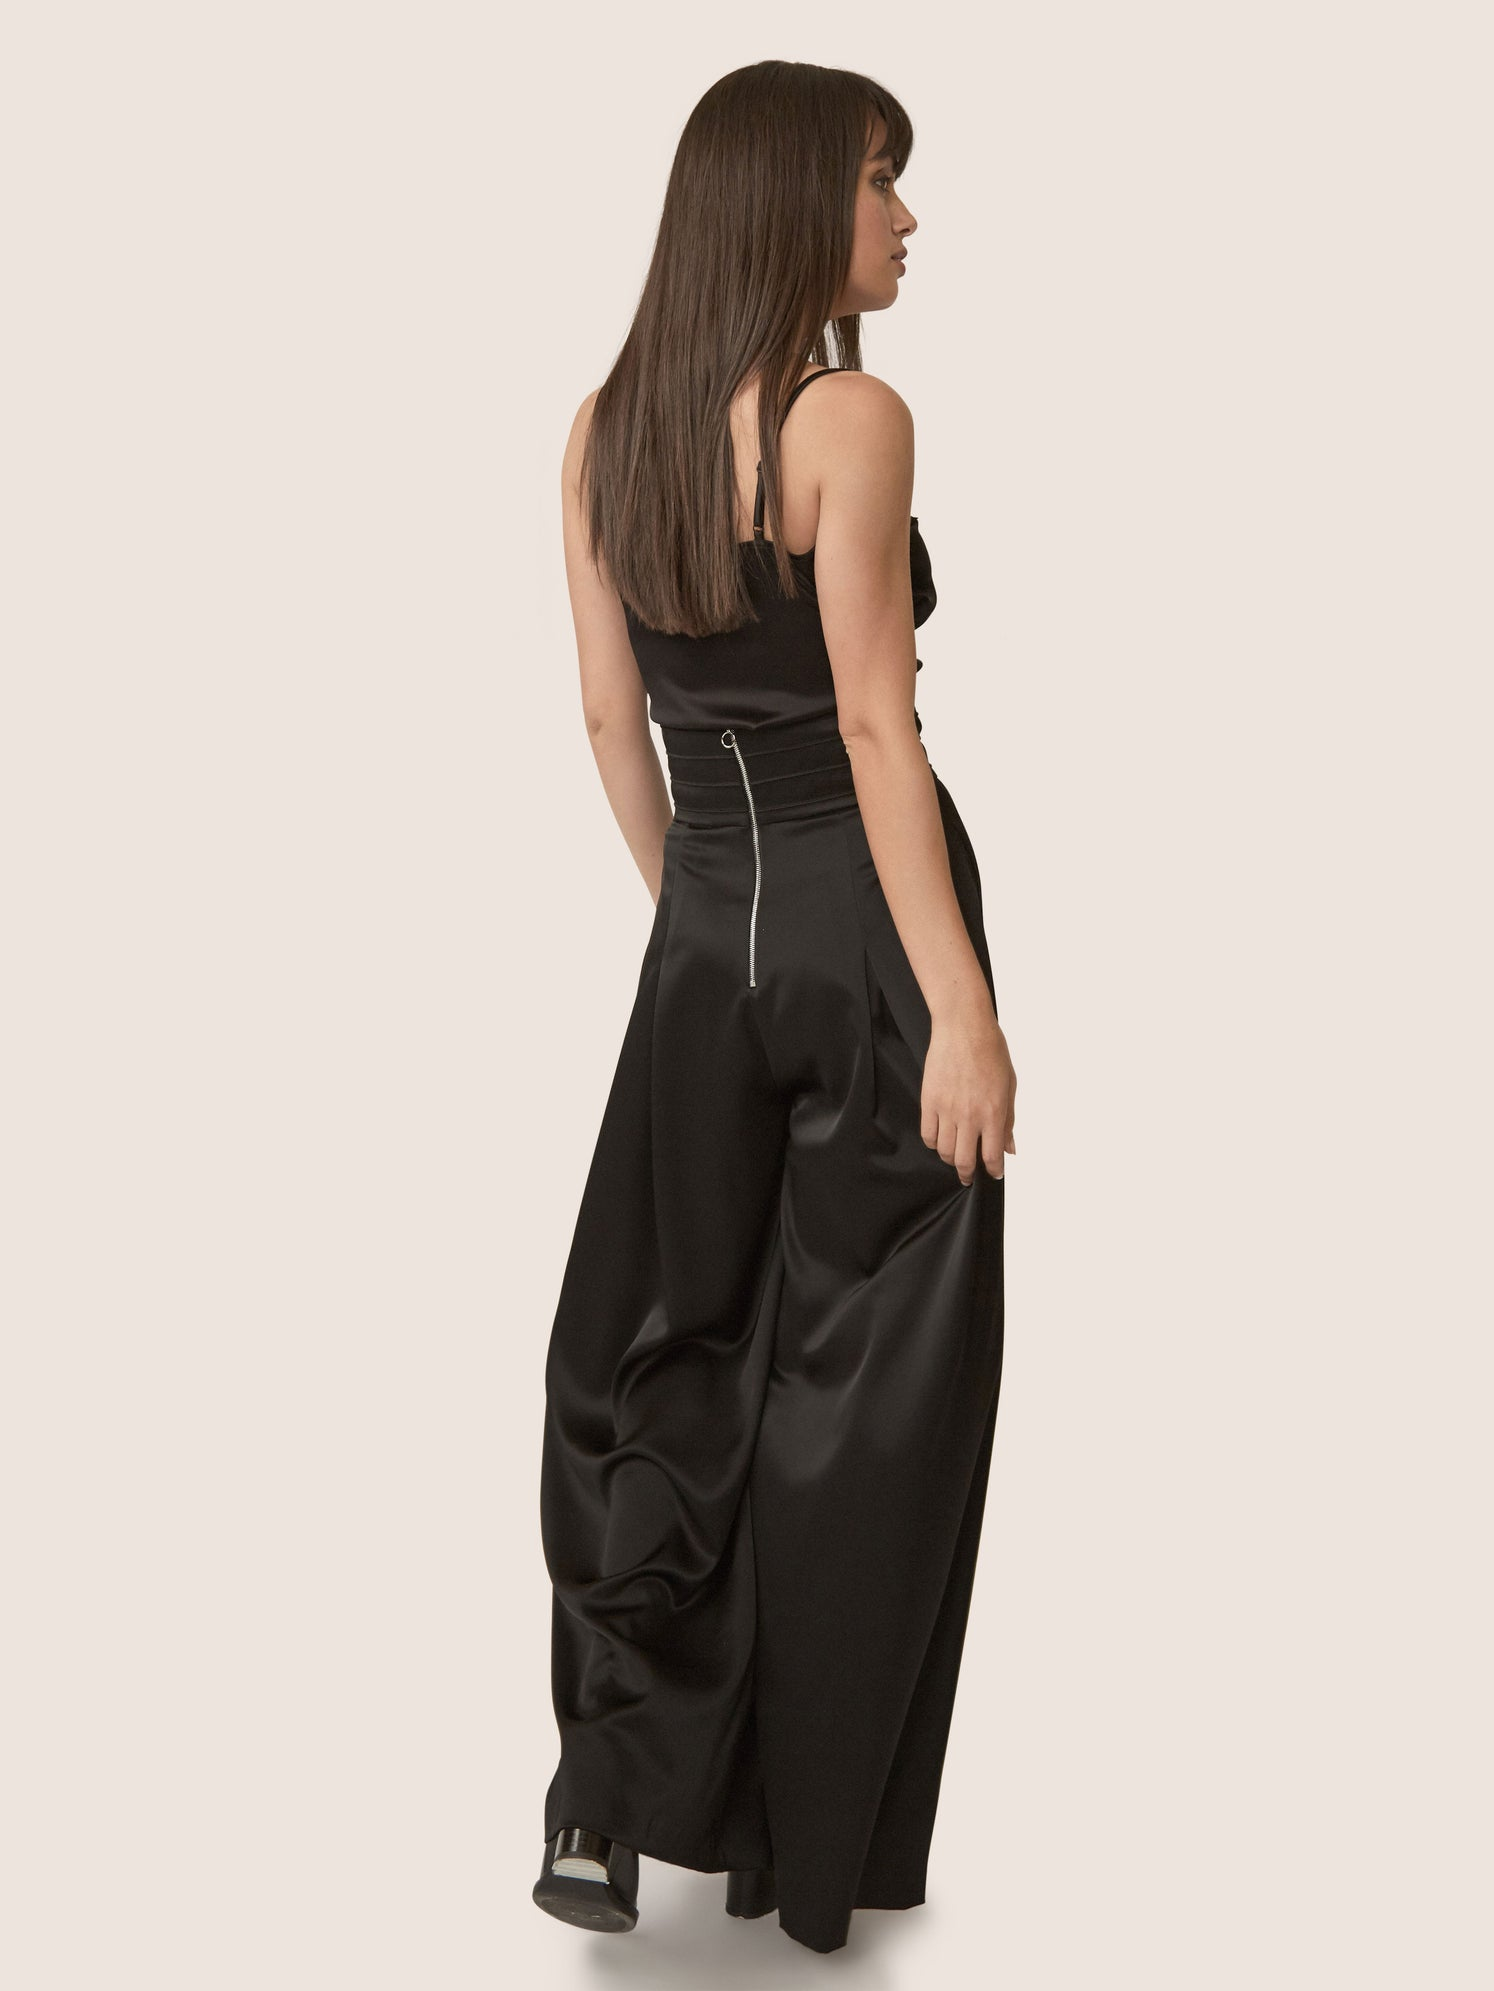 Back view of contemporary black satin wide leg pant with ultra-high waistline and front slit.